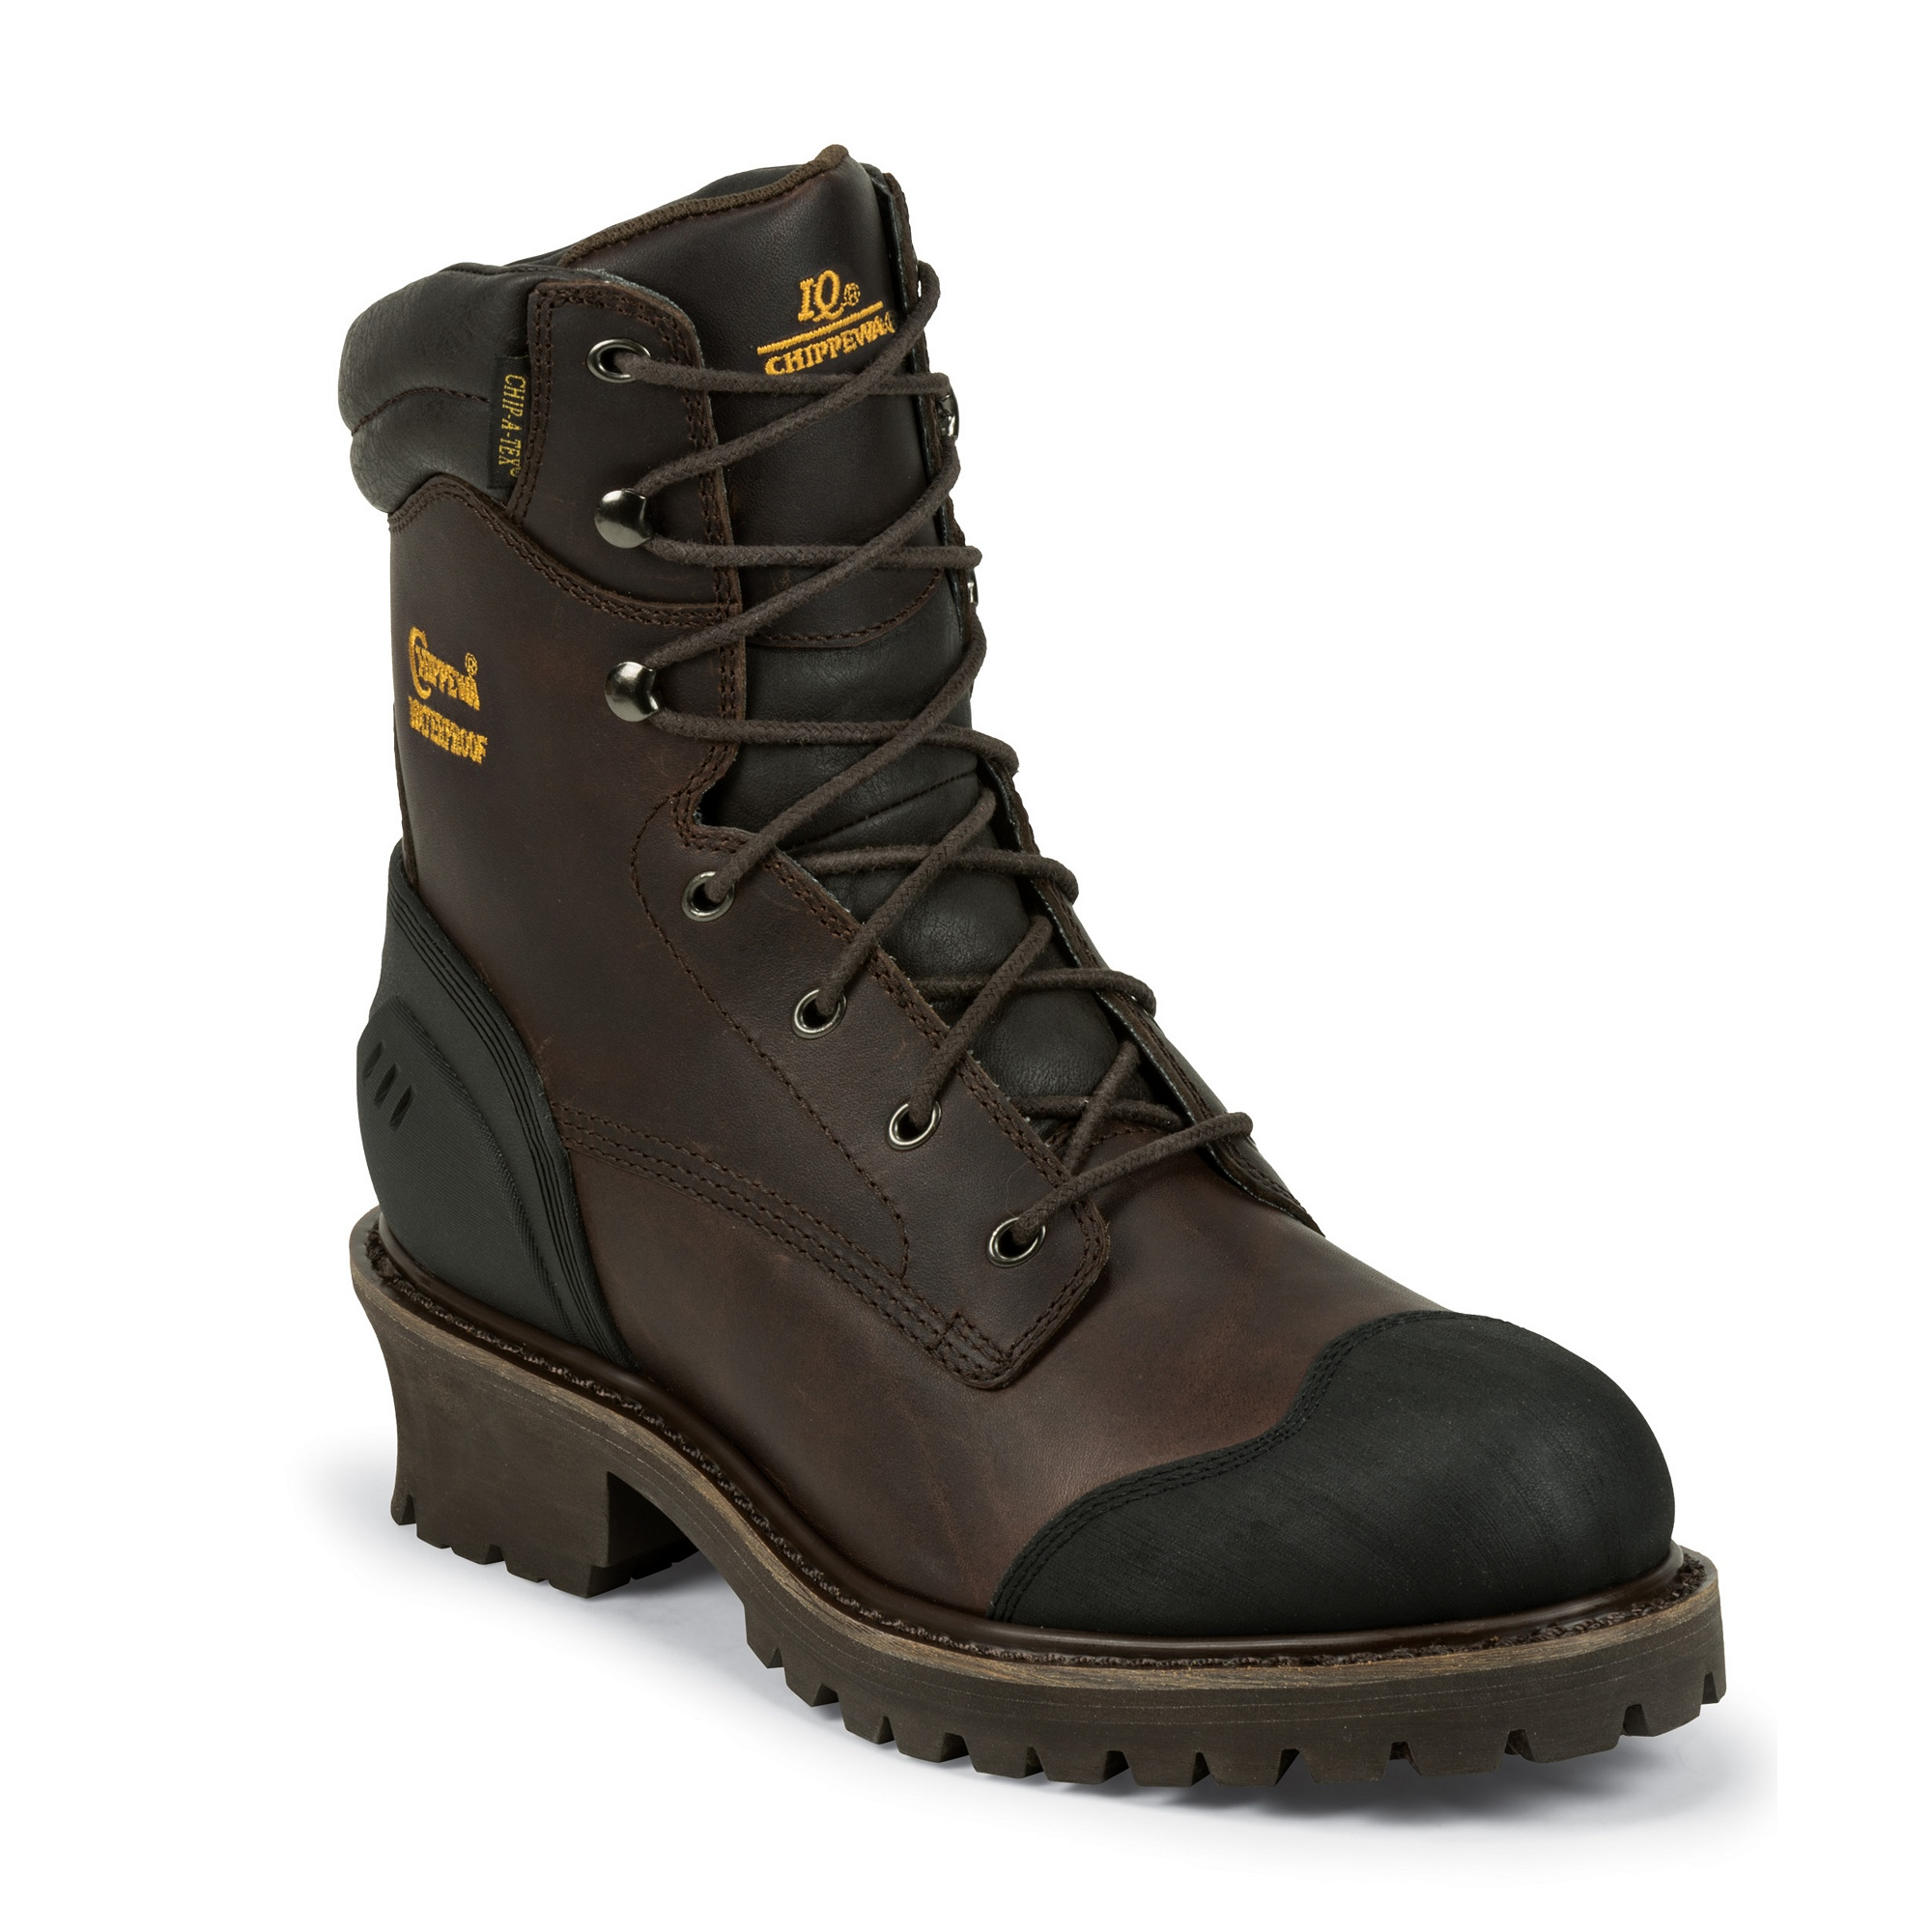 "Chippewa 8"" Oiled Waterproof Insulated Logger"